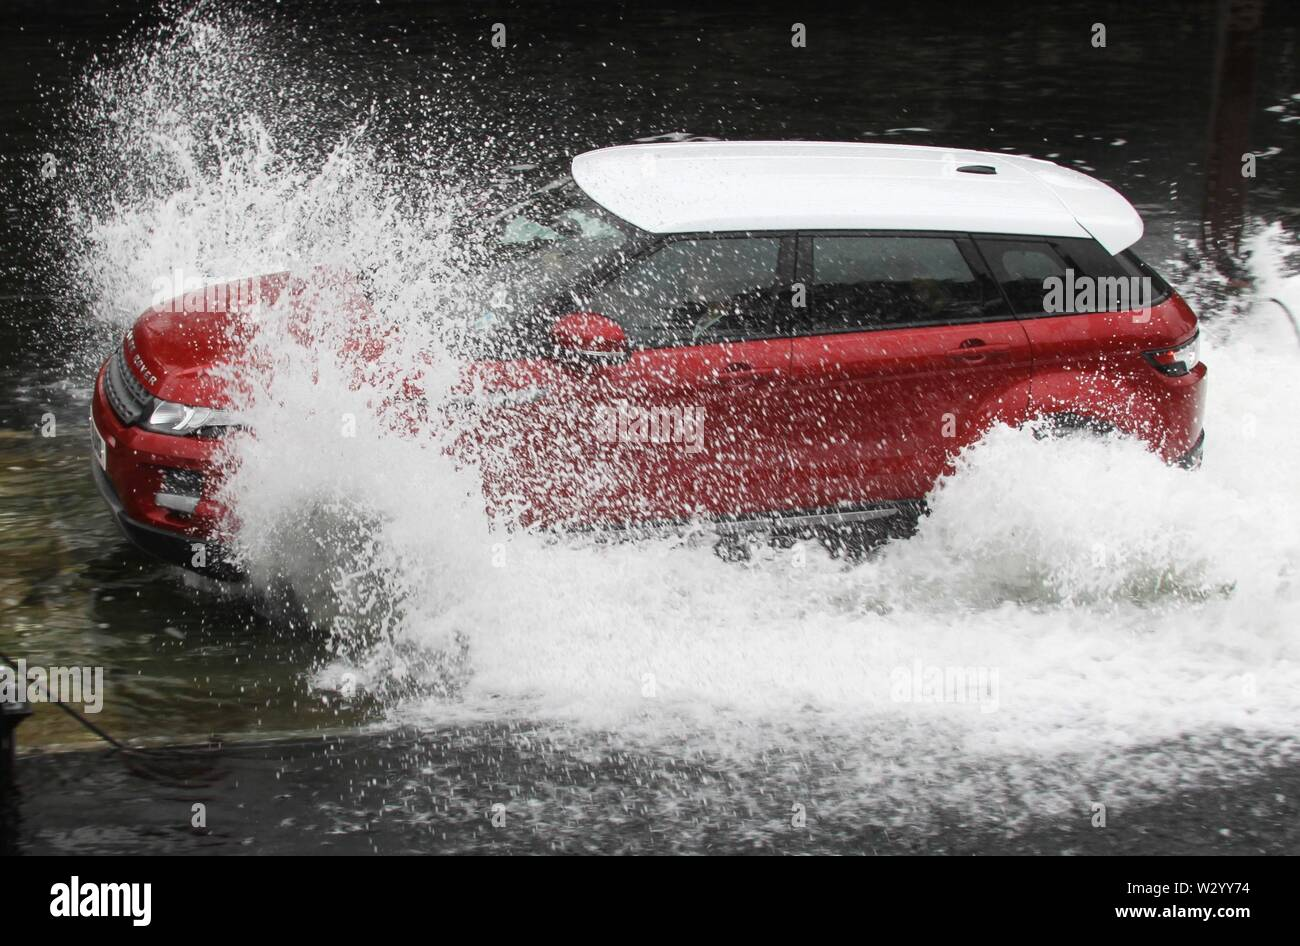 Liverpool,Uk GLOBEL PRESS LAUNCH OF THE BABY RANGE ROVER EVOKE AT LIVERPOOL ALBERT DOCK credit Ian Fairbrother/Alamy Stock Photos - Stock Image